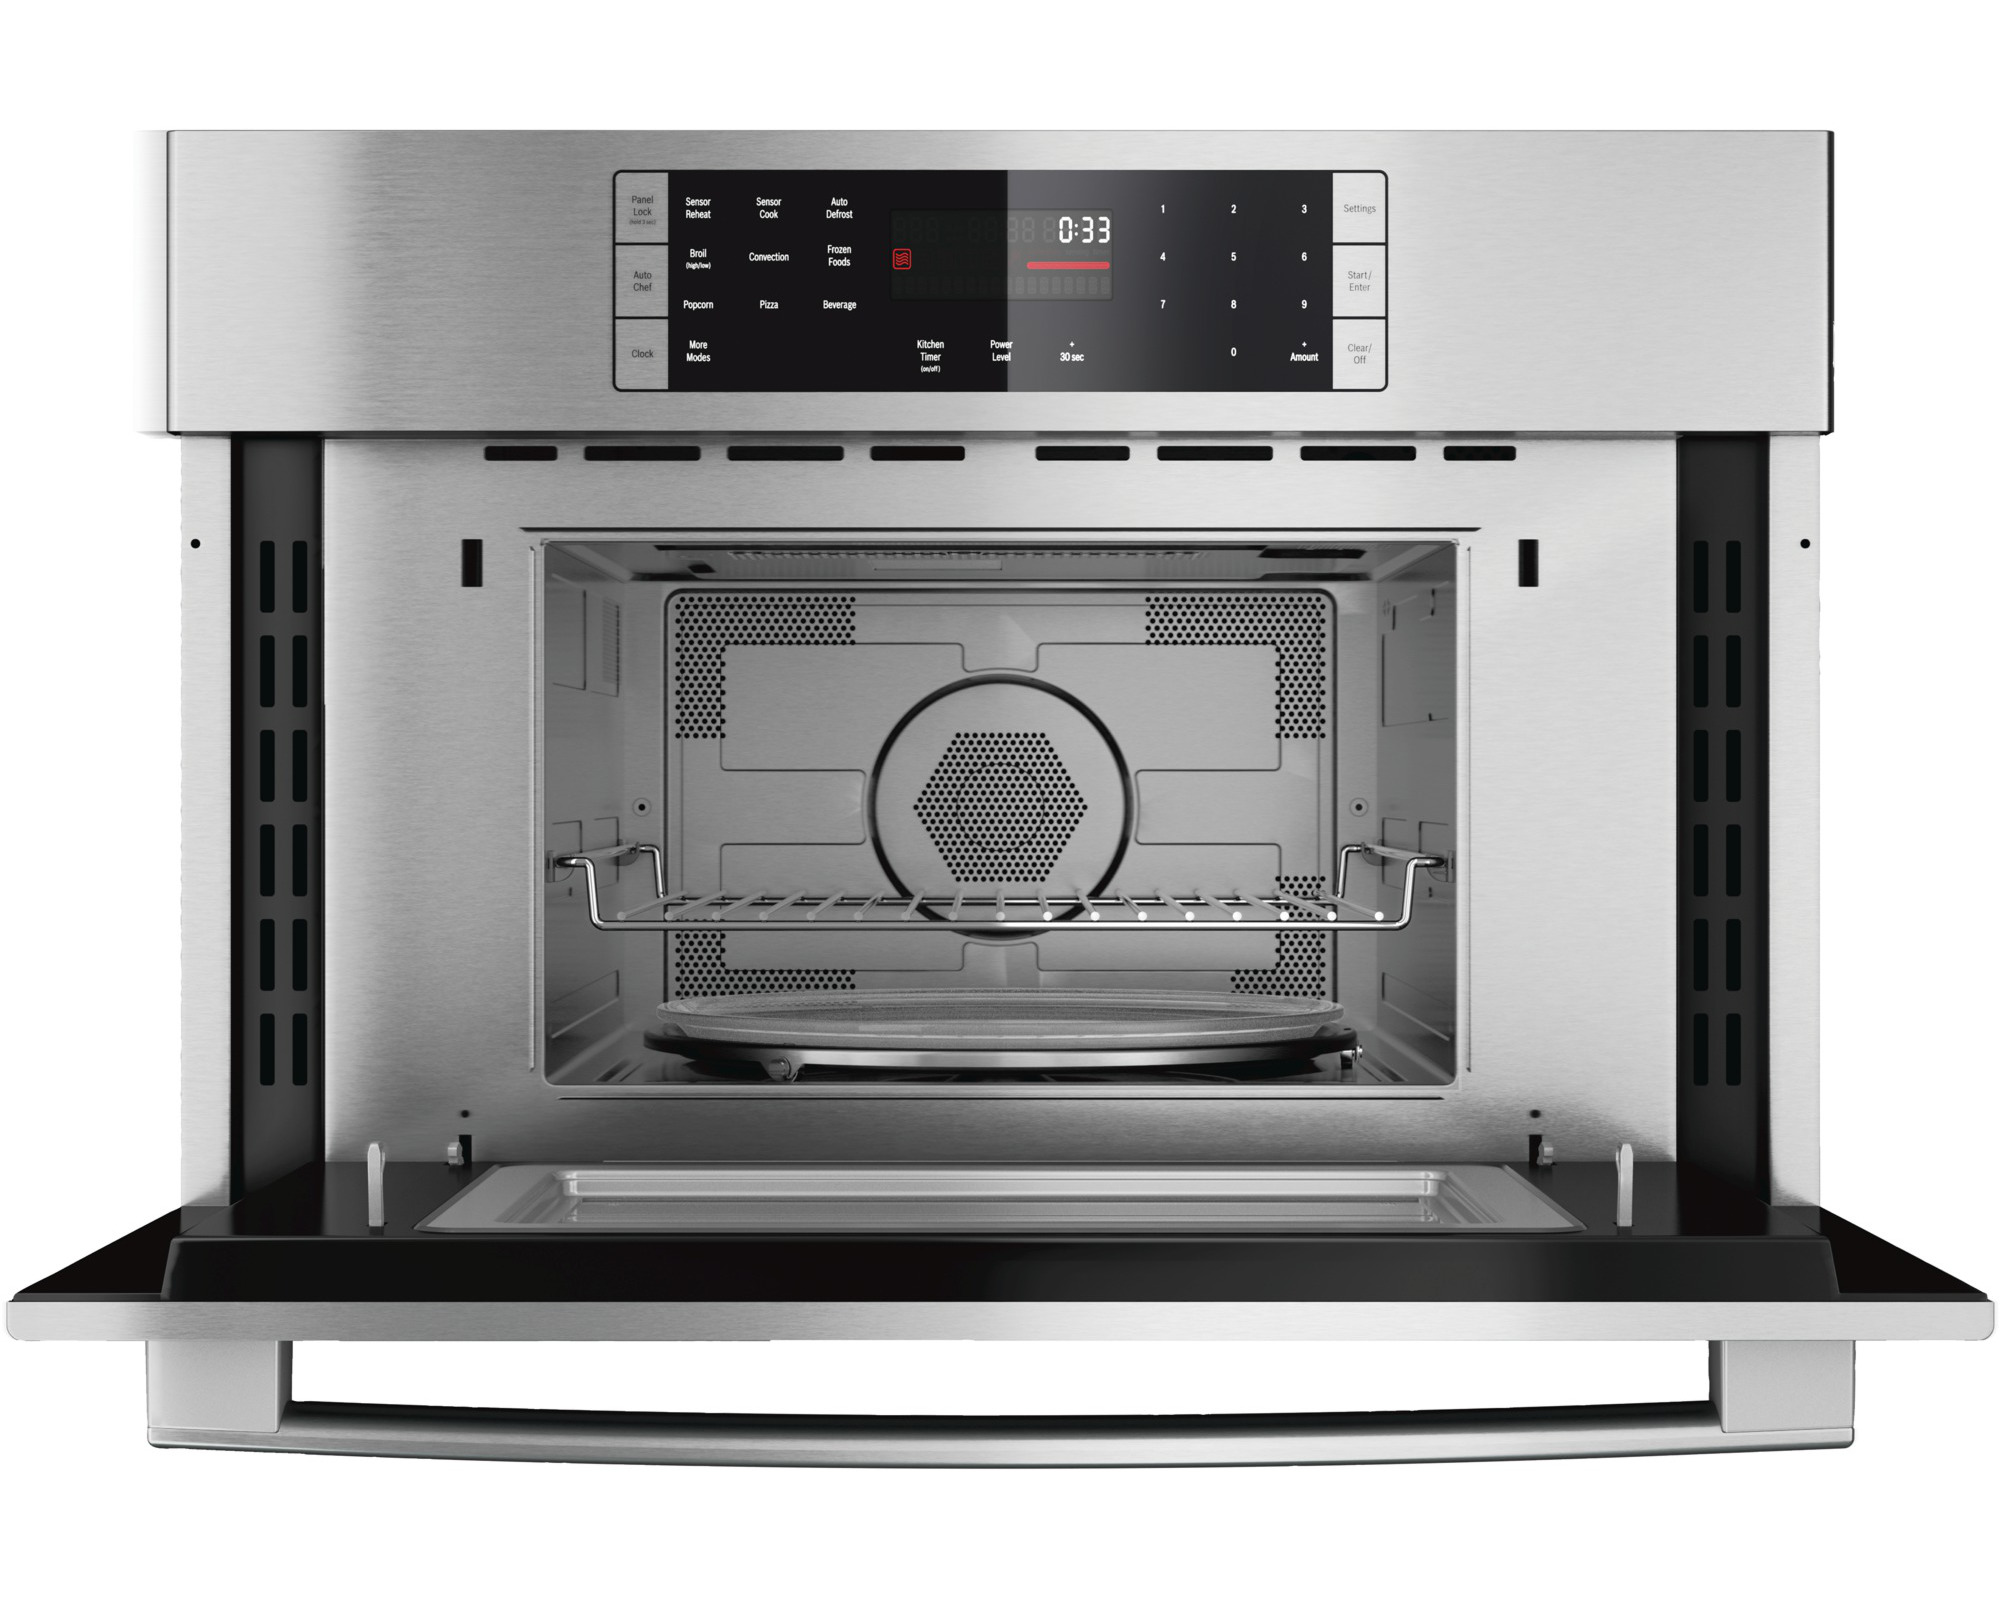 Bosch HMC87151UC 1.6 cu. ft. 800 Series Speed Microwave Oven - Stainless Steel